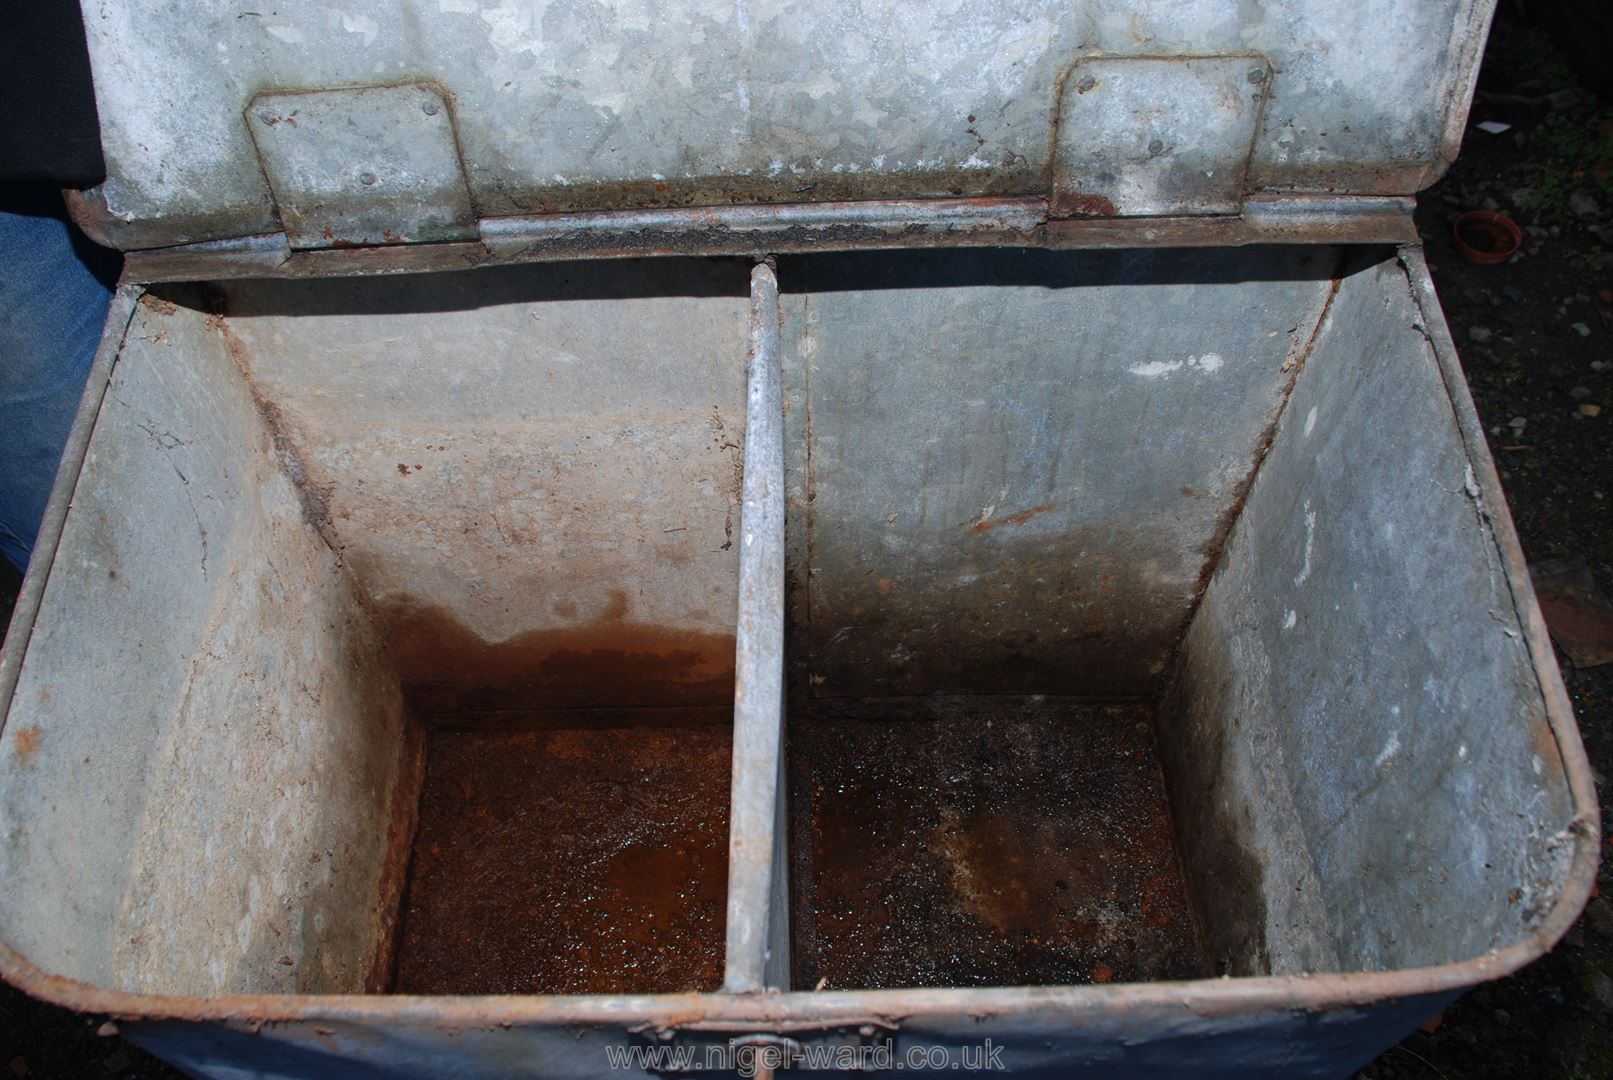 Metal feed bin with two sections. - Image 2 of 2